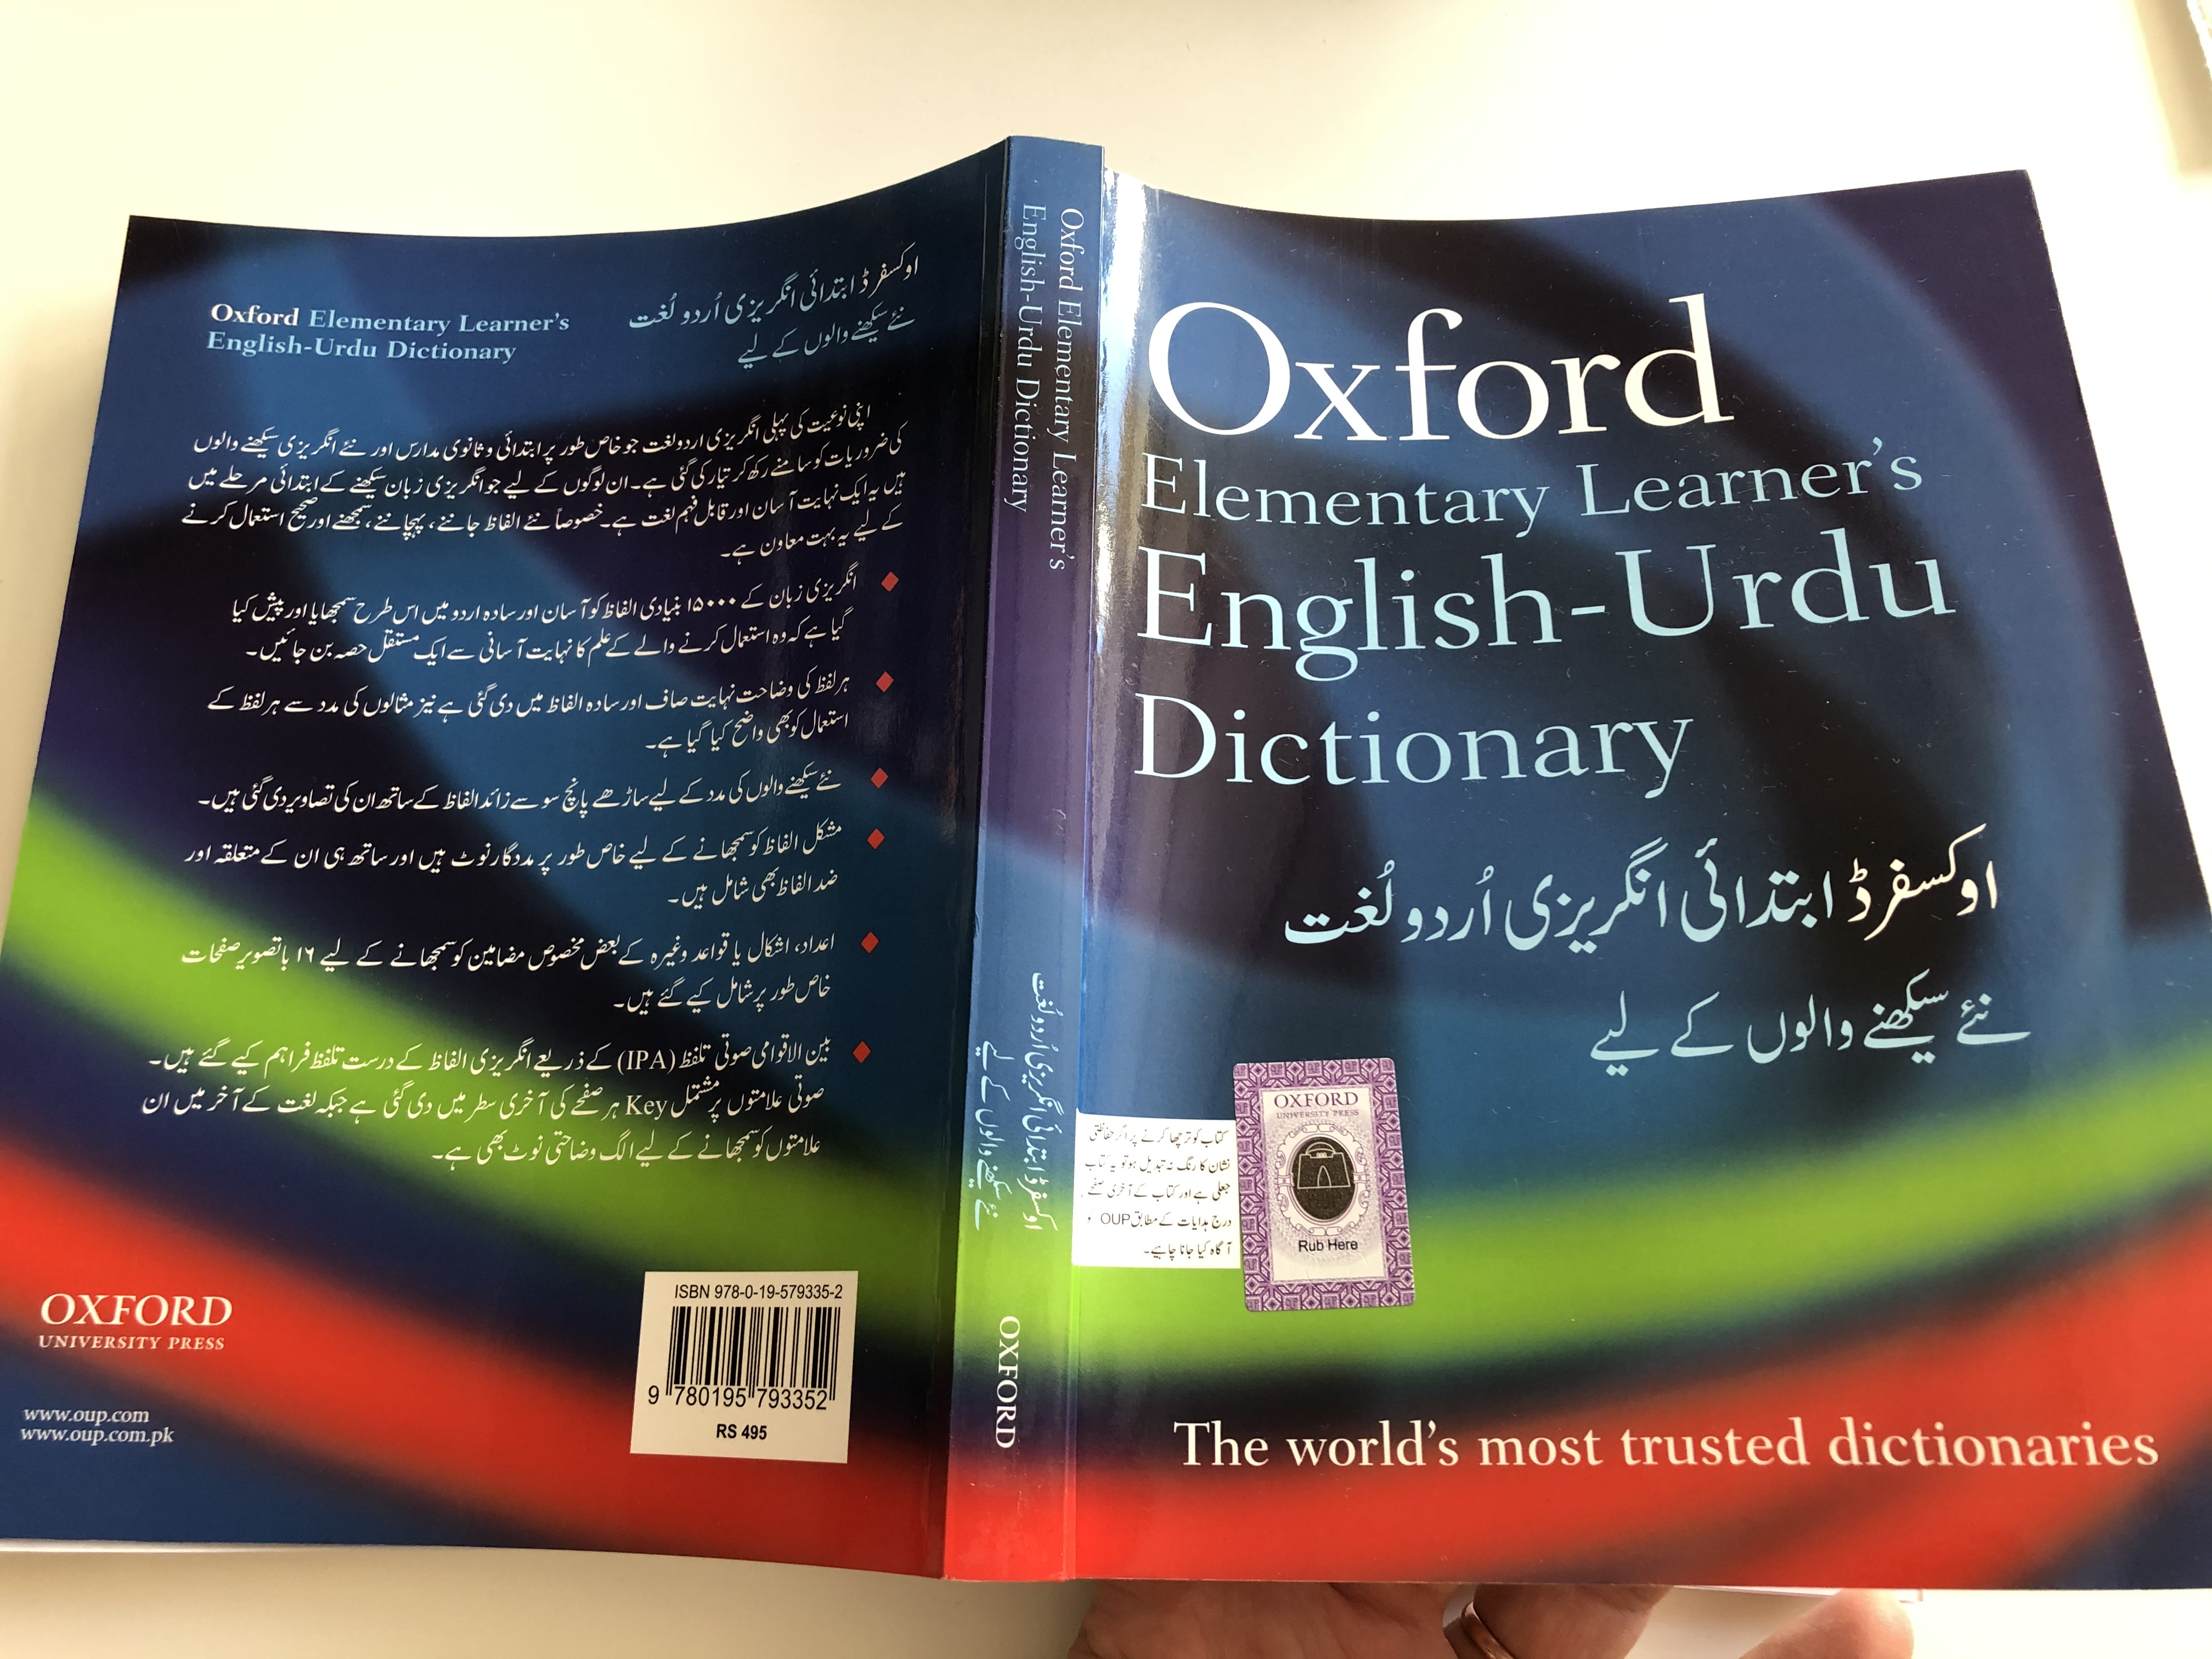 oxford-elementary-learner-s-english-urdu-dictionary-the-world-s-most-trusted-dictionaries-12-.jpg